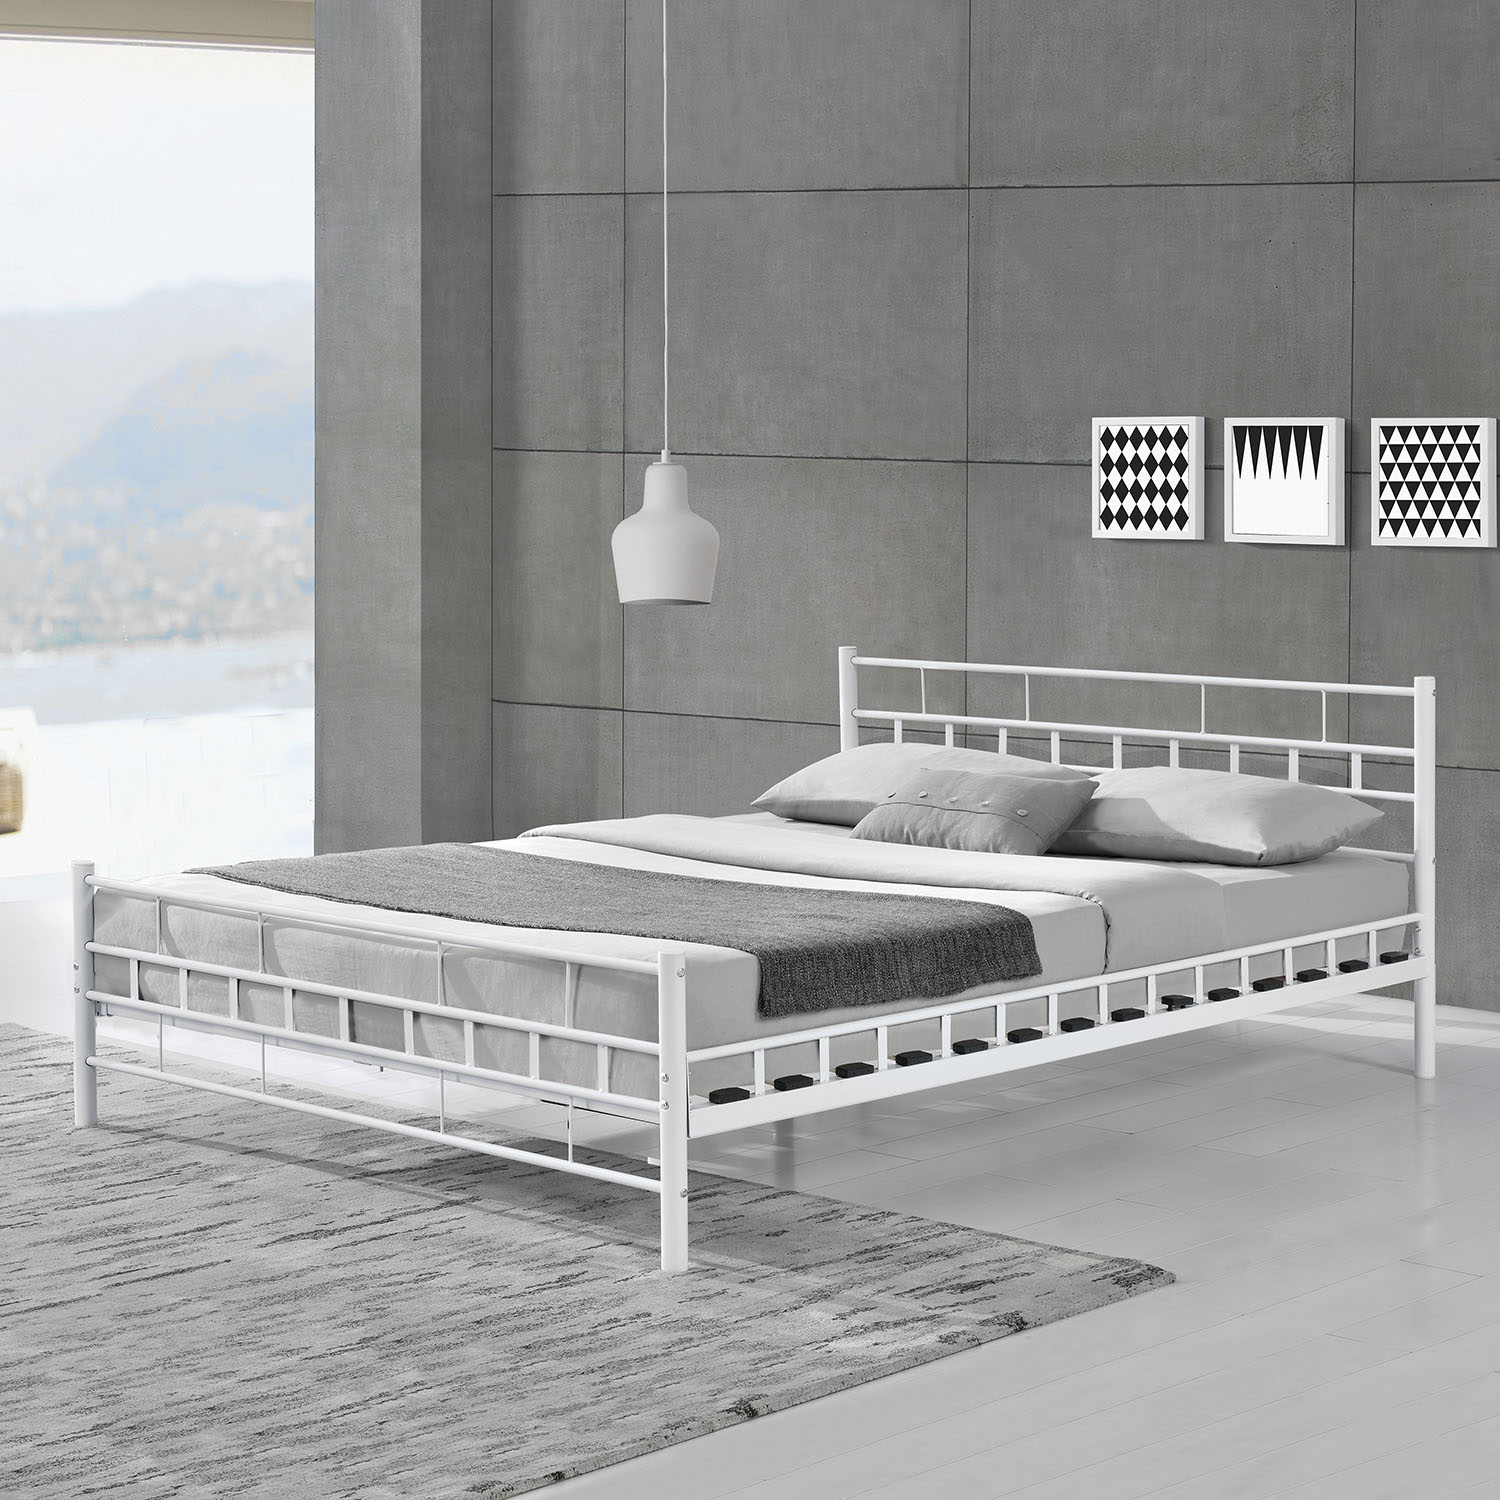 metallbett malta lattenrost bettgestell doppelbett. Black Bedroom Furniture Sets. Home Design Ideas